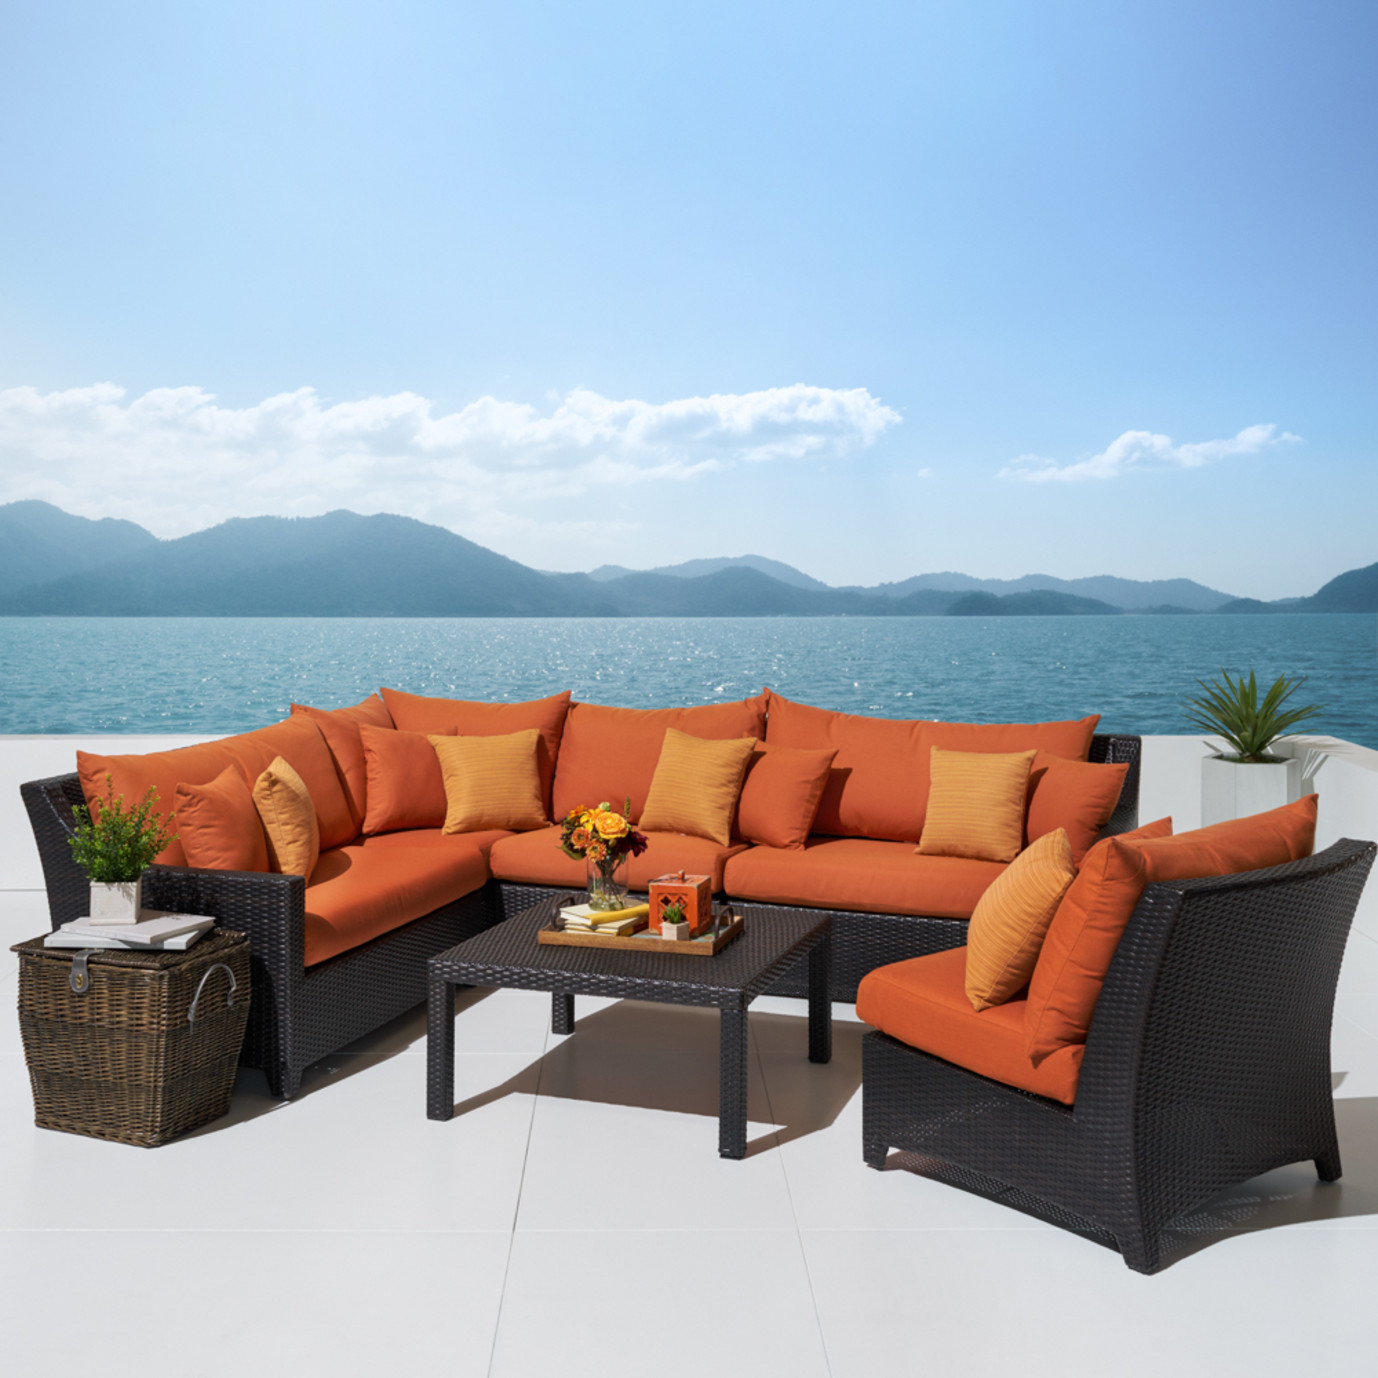 Deco™ 6pc Sectional and Table - Tikka Orange